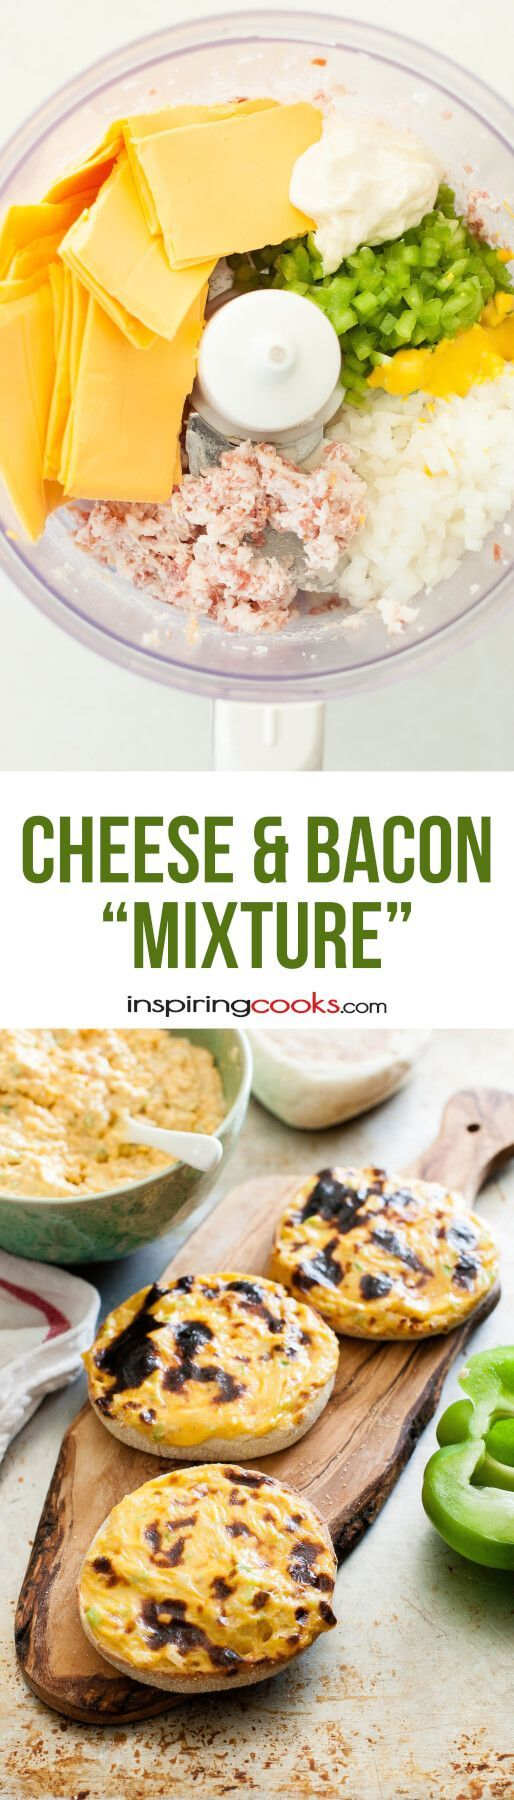 Cheese and Bacon Mixture Recipe. My kids LOVE this stuff. All I do is blend bacon, cheese, onions, peppers, mayo. and mustard together, put on an English muffin and broil them. I make a batch and keep it in the fridge and then whenever my kids want a snack or lunch, they throw it in the toaster oven and have hot, fresh food.